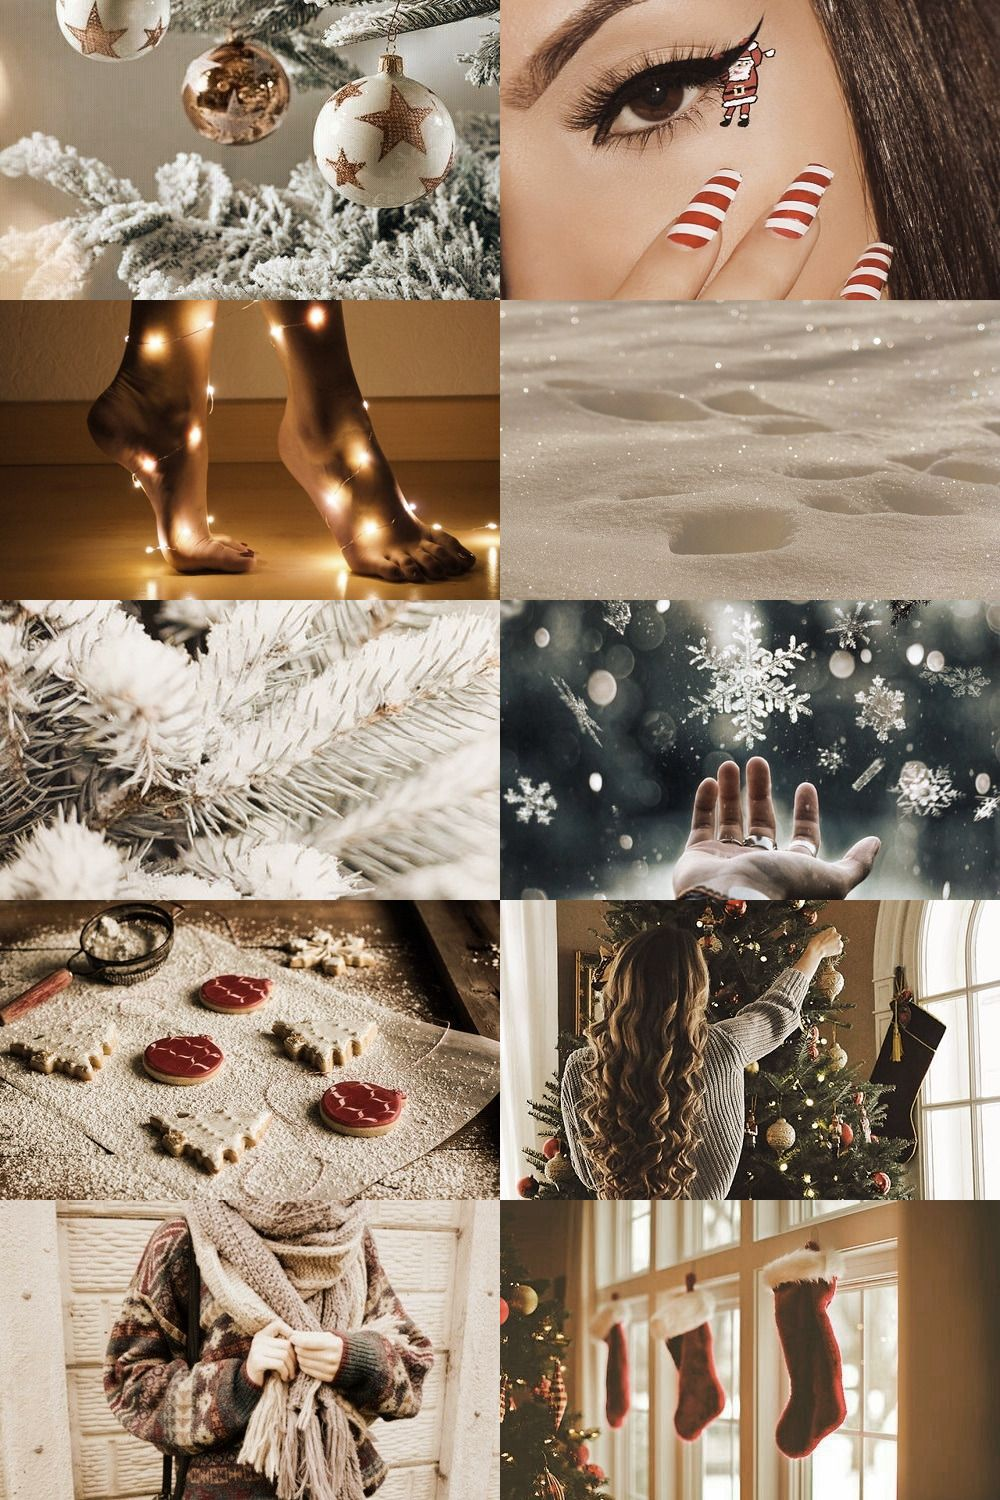 Http Catastrophepins Tumblr Com Post 155124422715 Christmas Witch Aesthetic First Place Prize For Christmas Aesthetic Christmas Collage Christmas Wallpaper